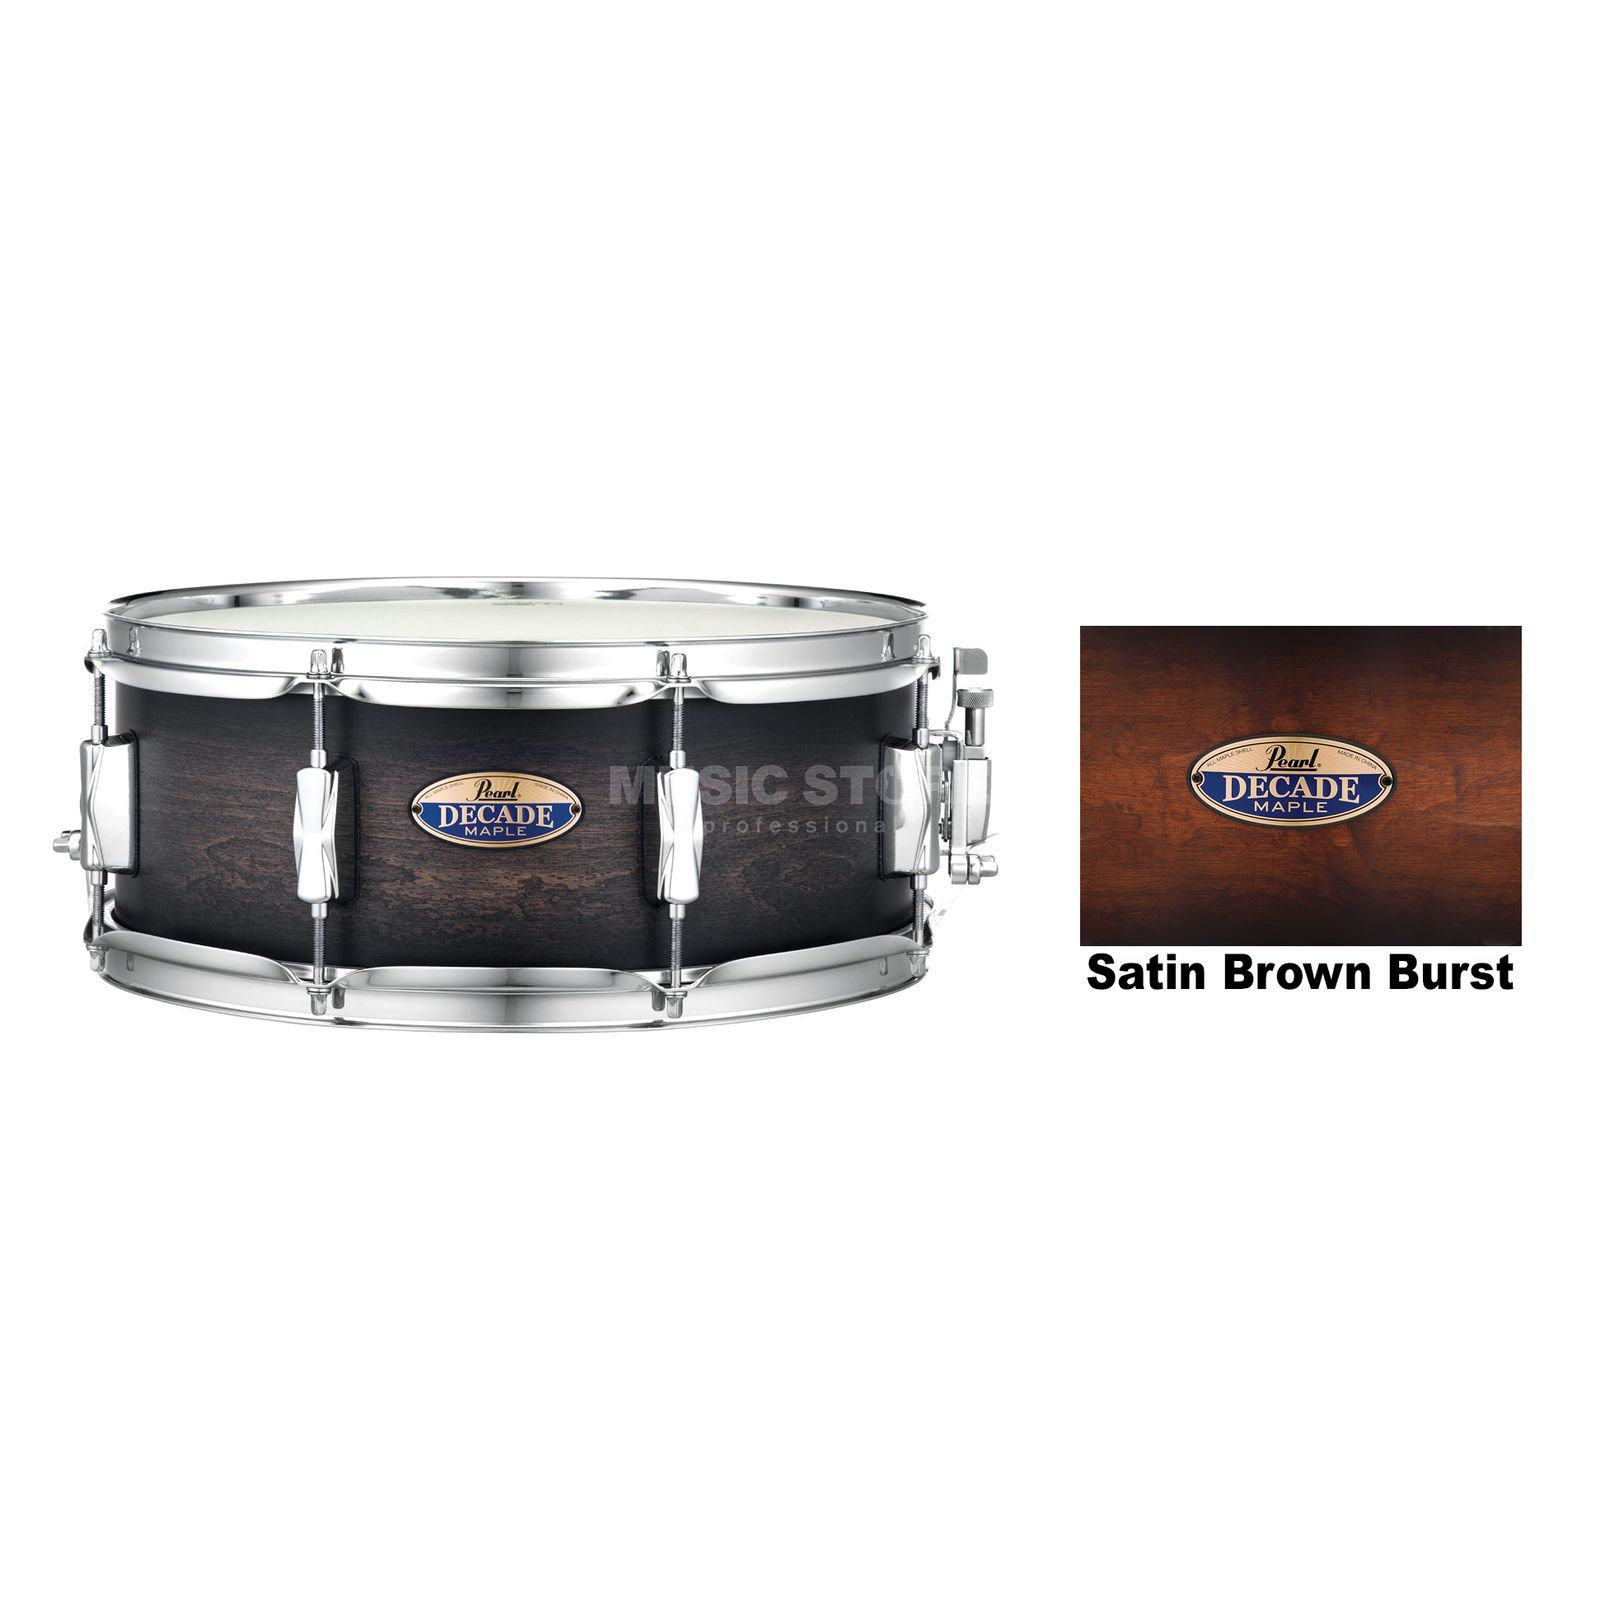 "Pearl Decade Maple Snare 14""x5,5"", Satin Brown Burst #260 Immagine prodotto"